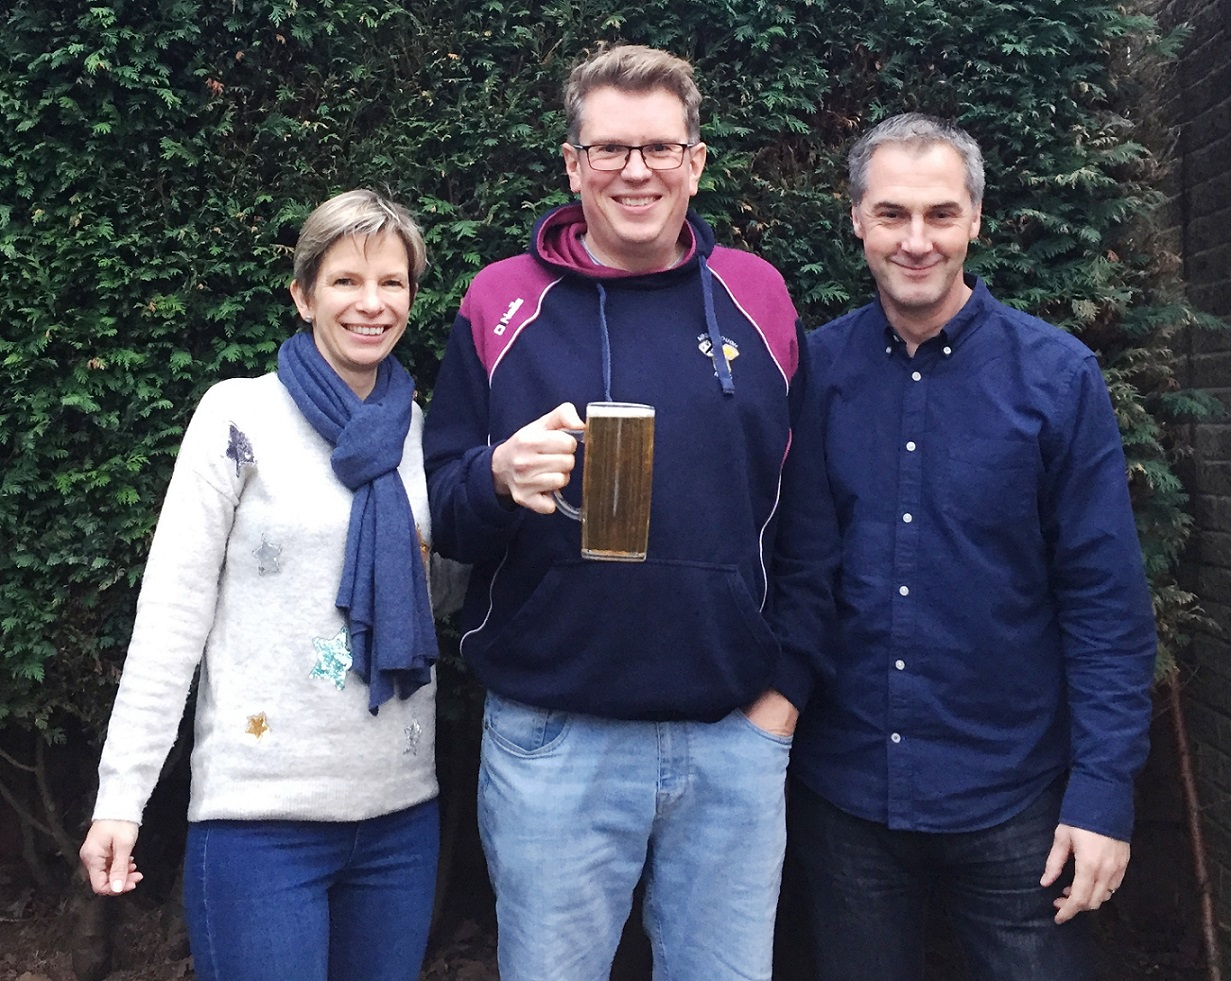 Rob Rattray (centre), organiser of the Aireborough RUFC Beer Festival, with Vanessa and Barry White of Vanbar Associates